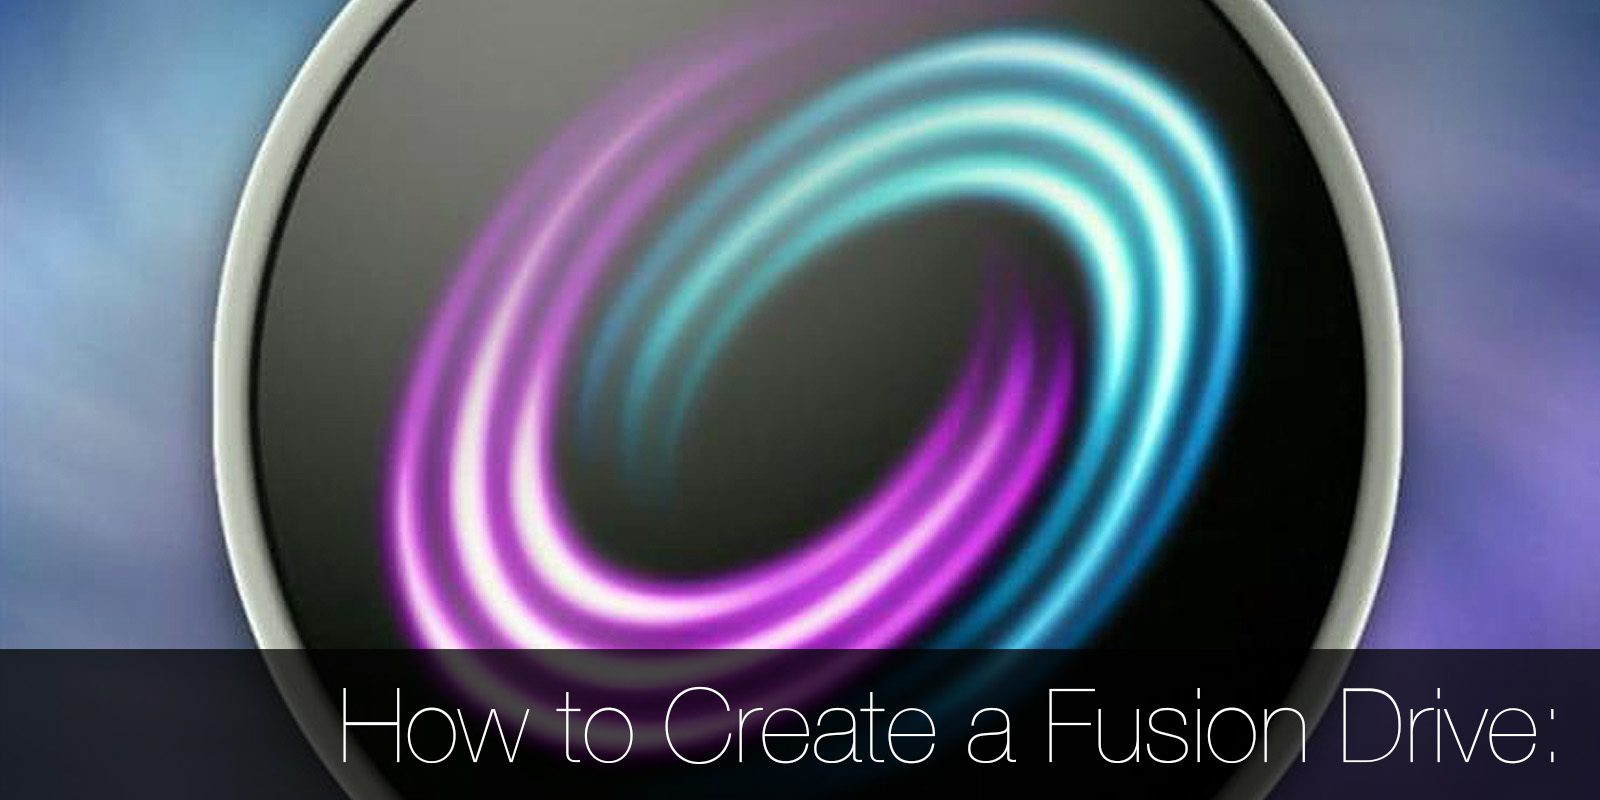 How to make your own Fusion Drive on a Mac